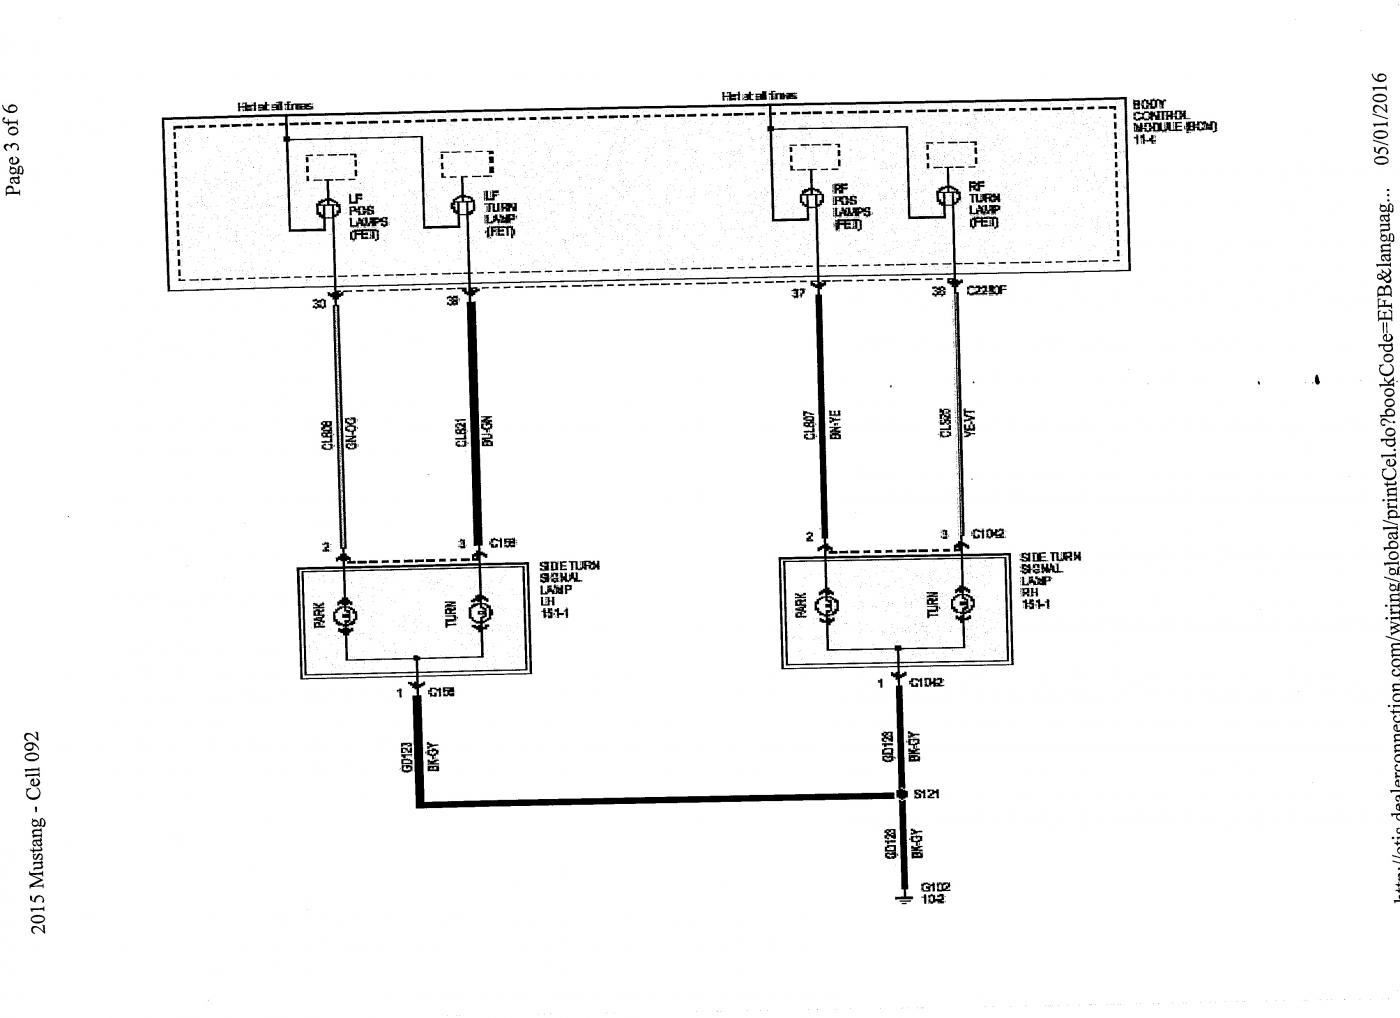 hight resolution of  wiring page 3 of 6 jpg